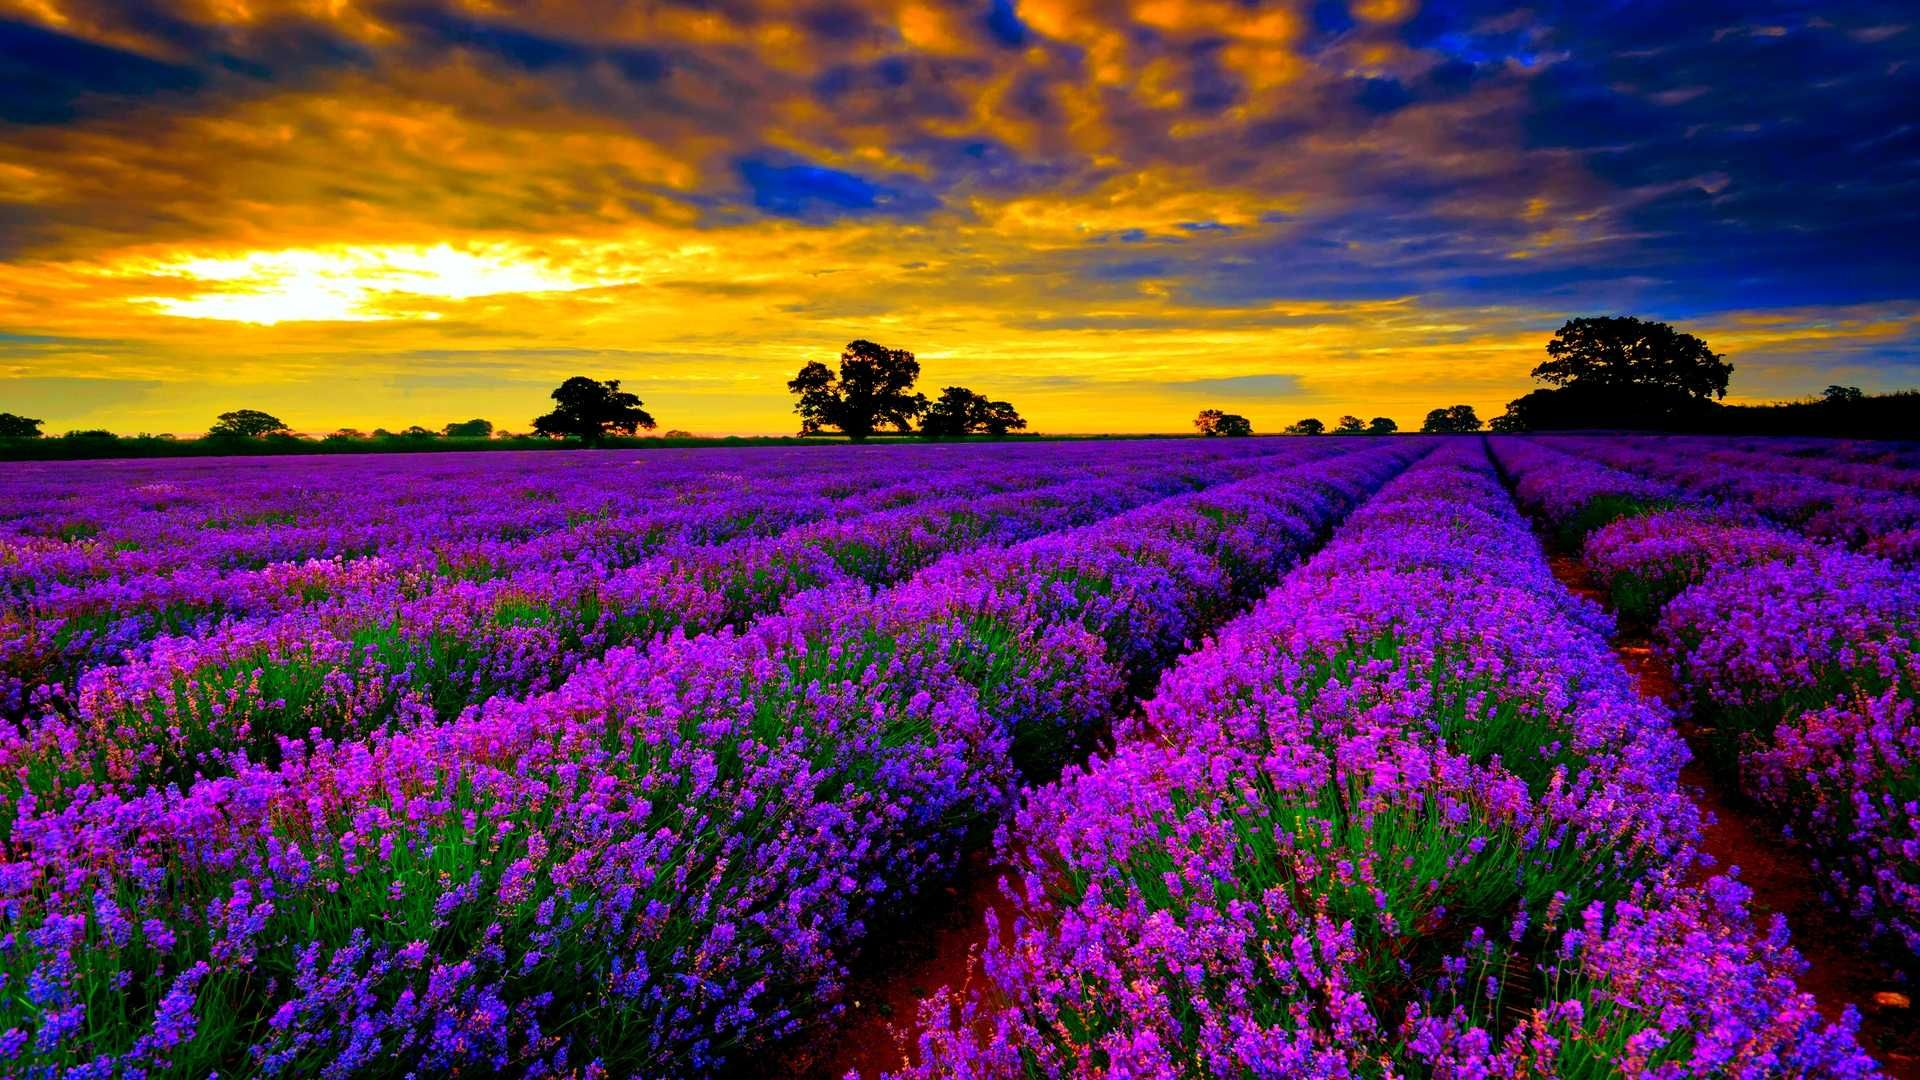 Lavender Fields Hd Wallpapers Sunset Wallpaper Lavender Fields France Country Gardening